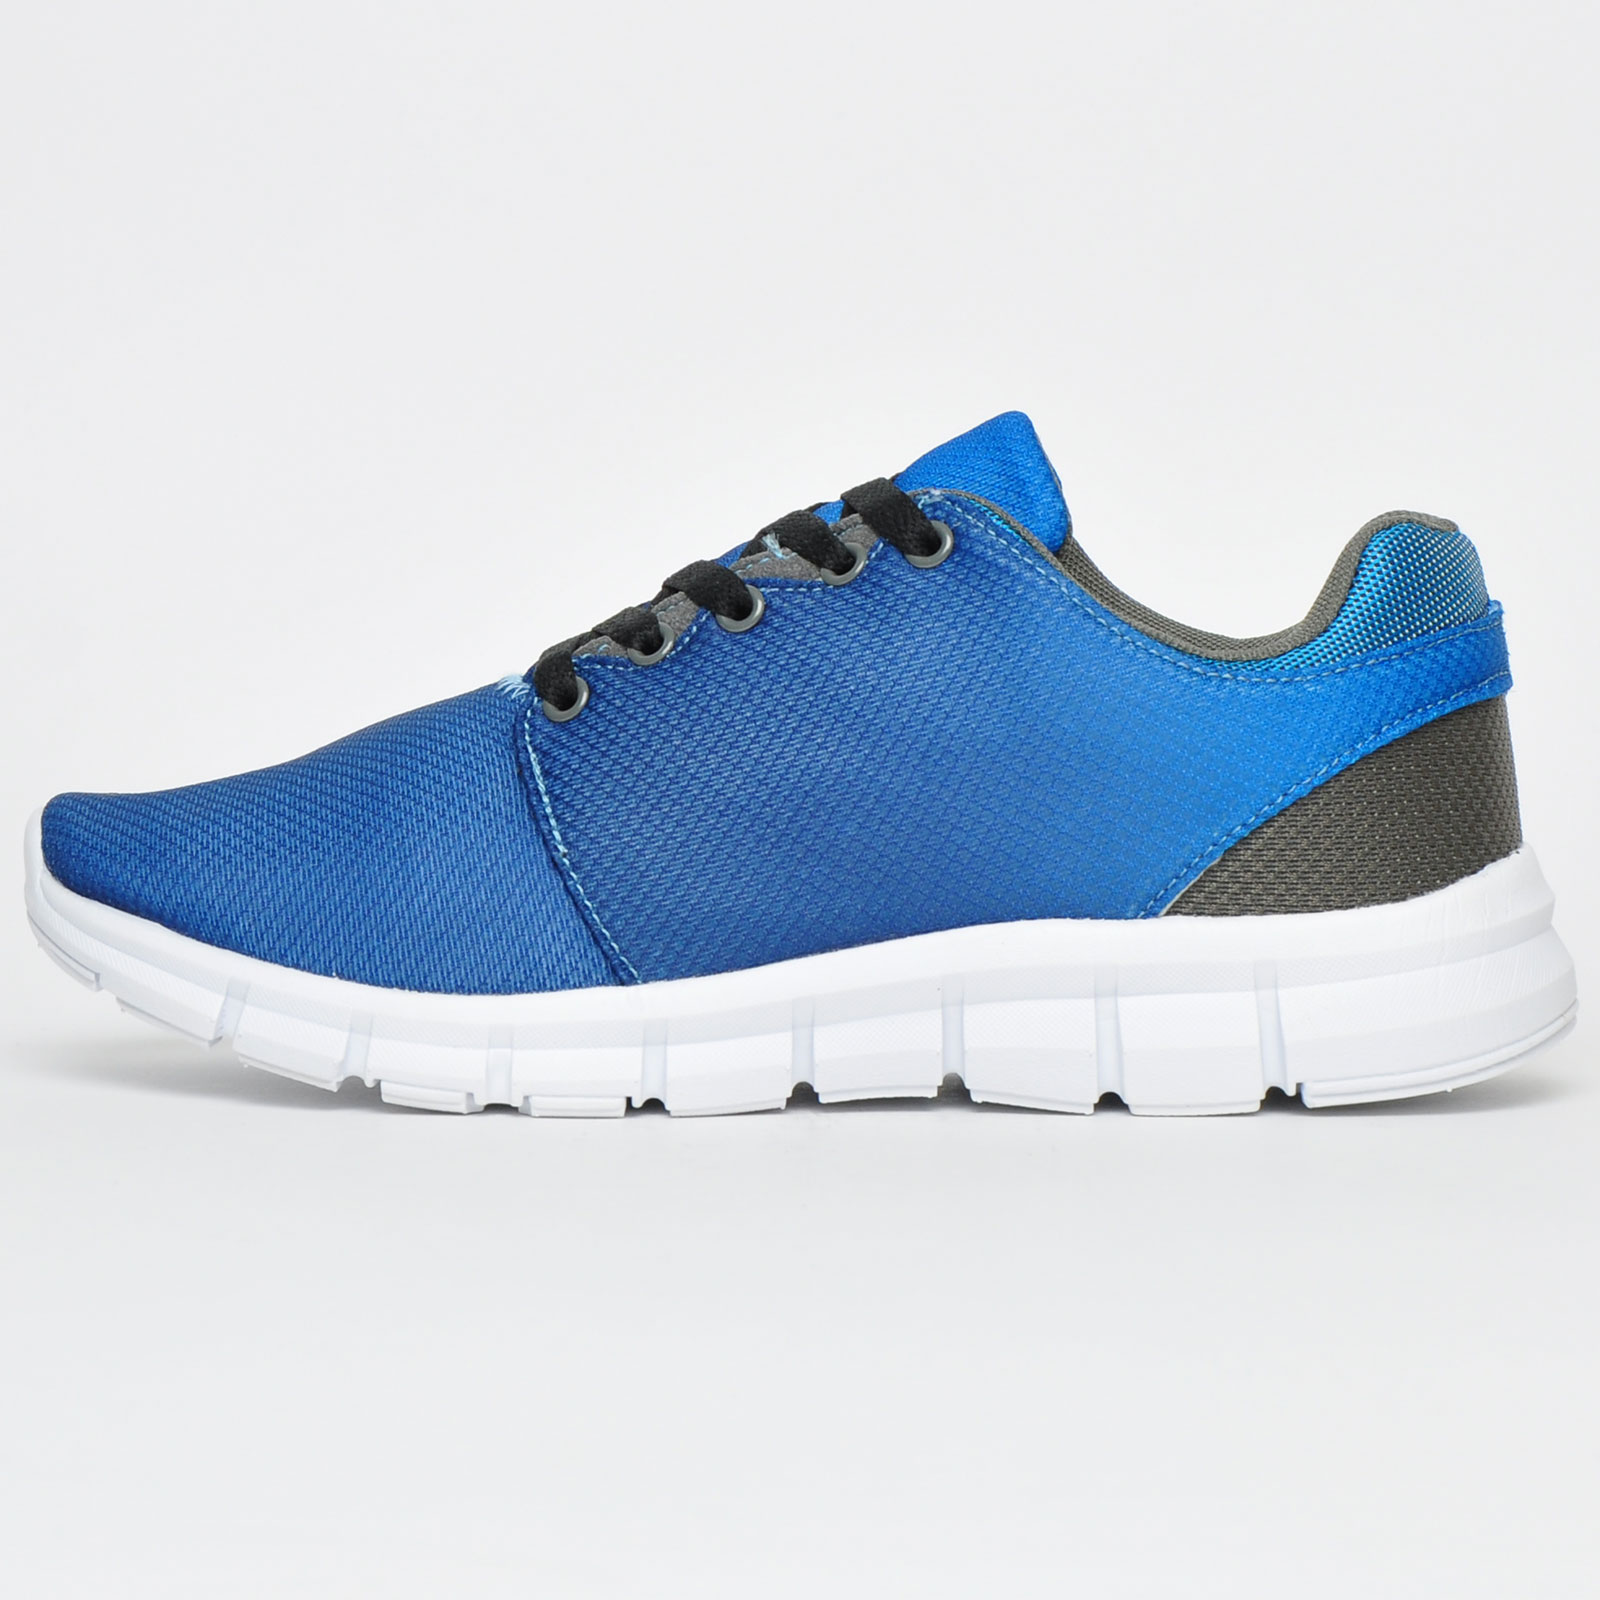 Details about Brooklyn SN Ultralite Flex Zone Mens Comfort Casual Gym  Trainers £9 99 FREE P&P